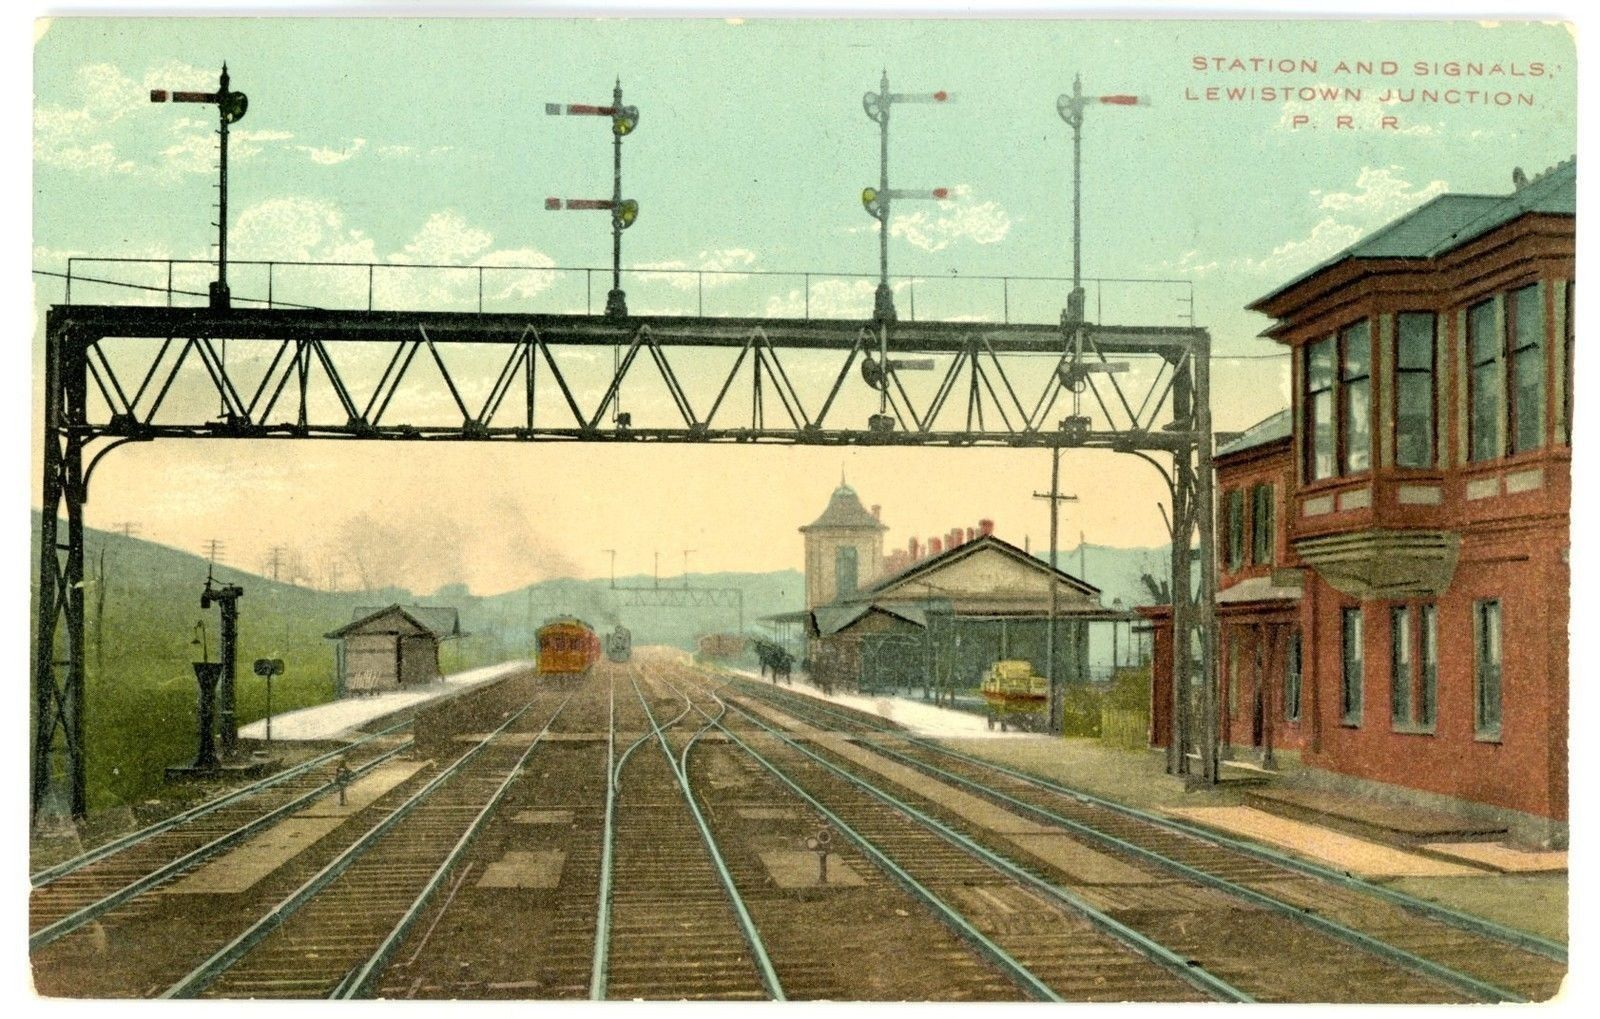 Lewistown_Junction_PA_1909.jpg